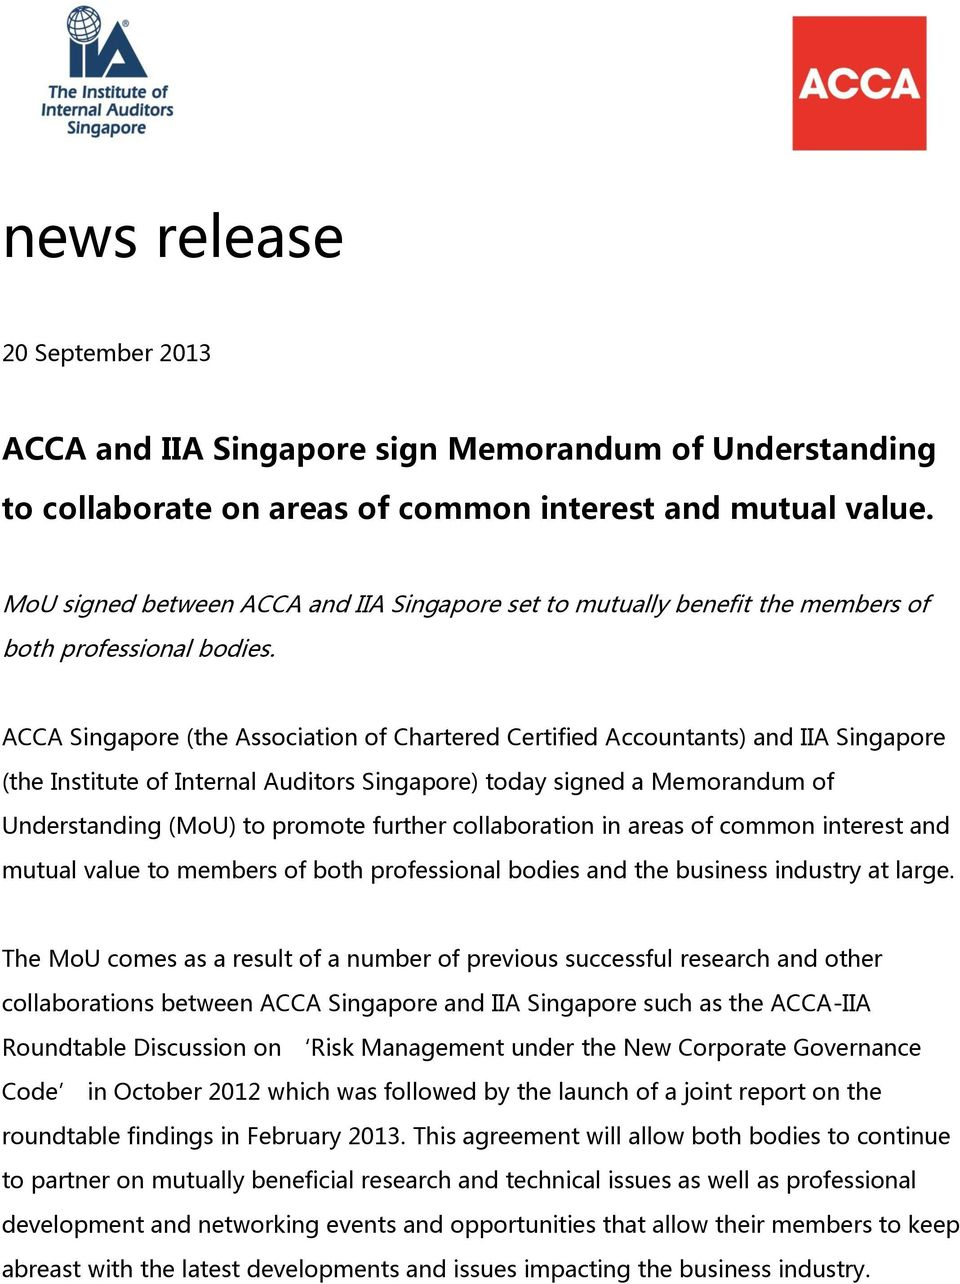 ACCA and IIA Singapore sign Memorandum of Understanding  to